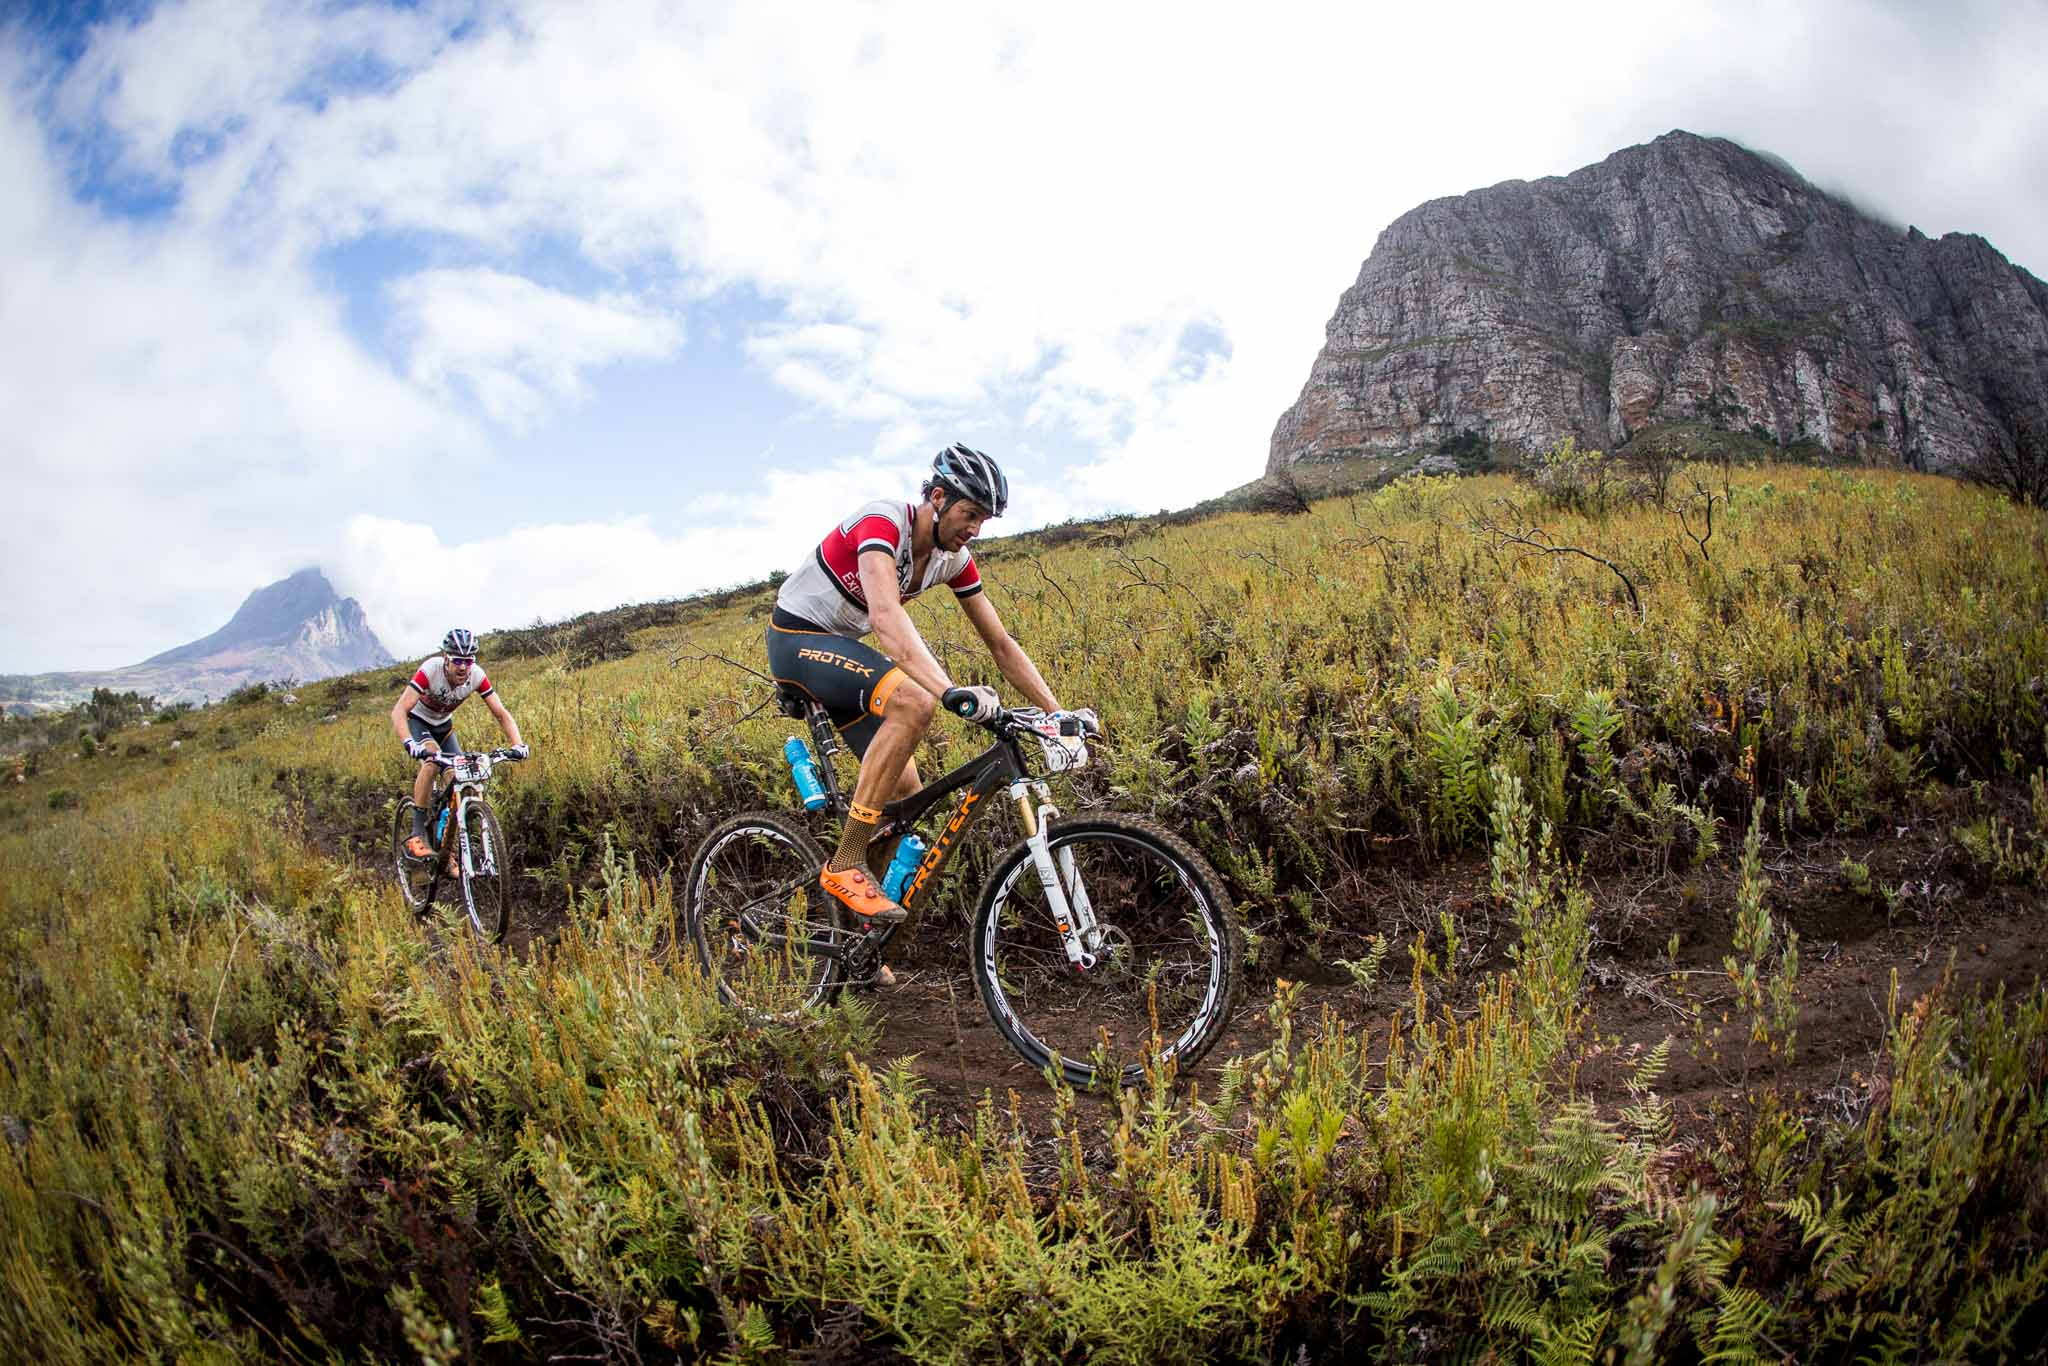 Tiago Jorge Ferreira Oliveira and Periklis Ilias of Team Dolomiti Superbike during stage 6 of the 2016 Absa Cape Epic Mountain Bike stage race from Boschendal in Stellenbosch, South Africa on the 19th March 2015 Photo by Nick Muzik/Cape Epic/SPORTZPICS PLEASE ENSURE THE APPROPRIATE CREDIT IS GIVEN TO THE PHOTOGRAPHER AND SPORTZPICS ALONG WITH THE ABSA CAPE EPIC ace2016